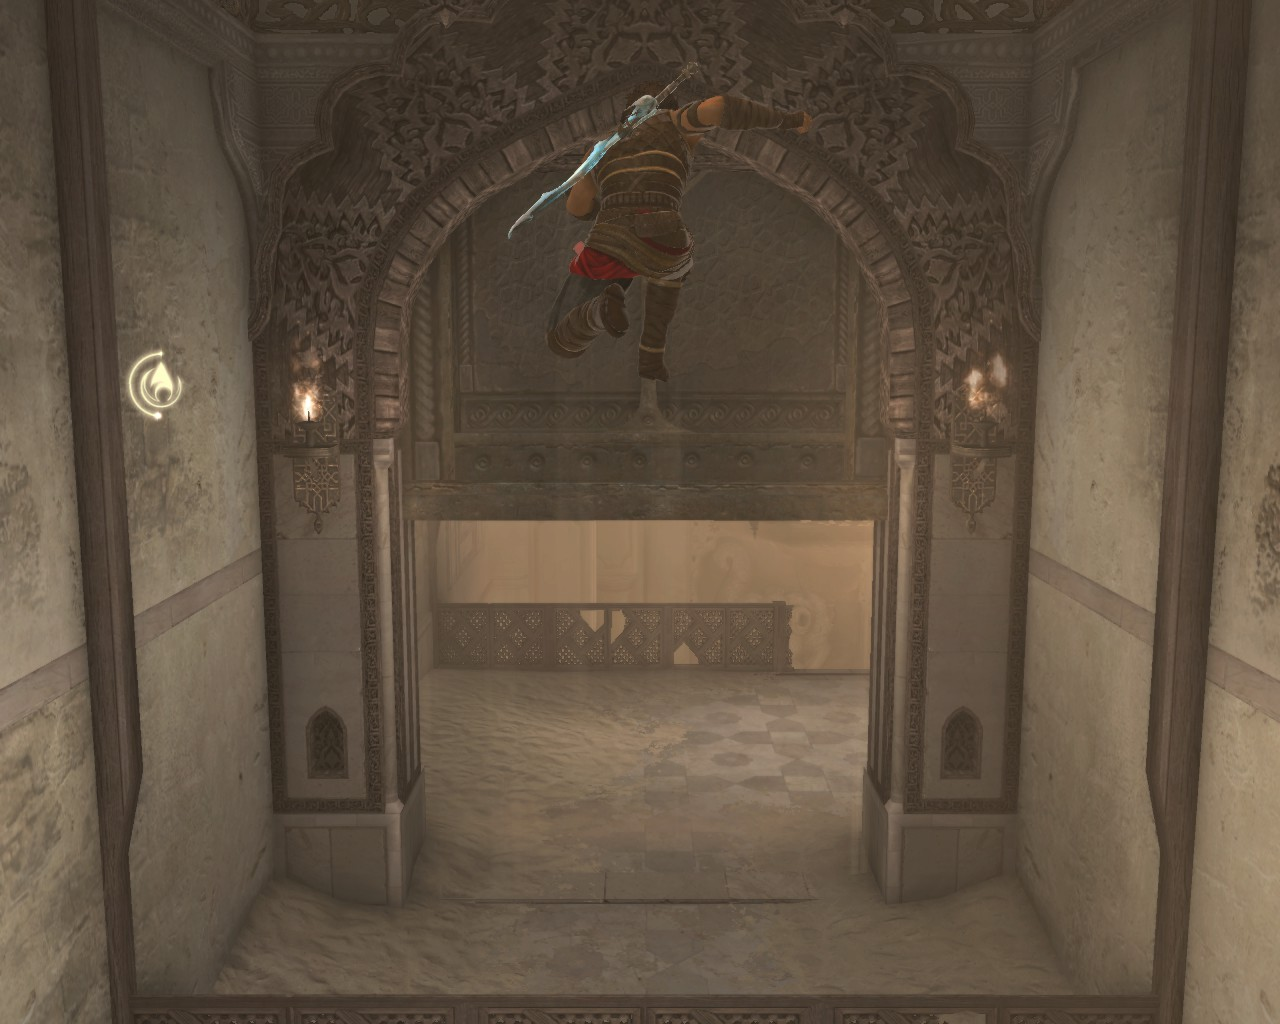 Prince of Persia 2014-06-04 20-01-20-86.jpg - Prince of Persia: The Forgotten Sands